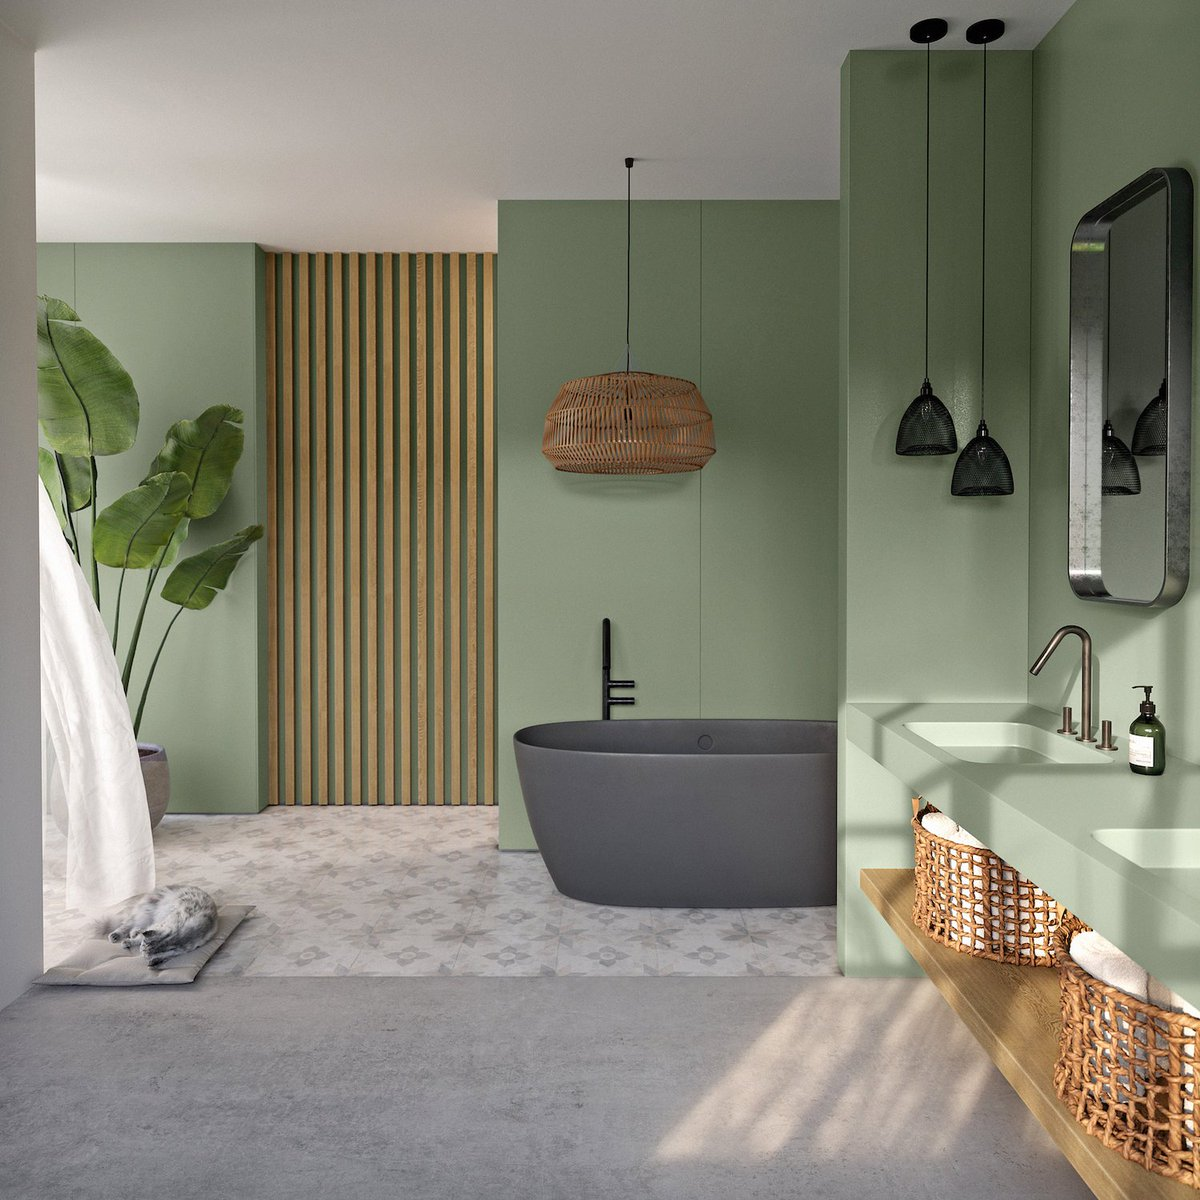 Green bathrooms set the trend! 🟢 🛁 🛠️ If you are planning to renovate your bathroom and want to provide it with a fresh and bold hint, #Silestone Posidonia Green is the answer for that. Check it out at bit.ly/3gQlNrv #SunlitDays #HybriQTechnology